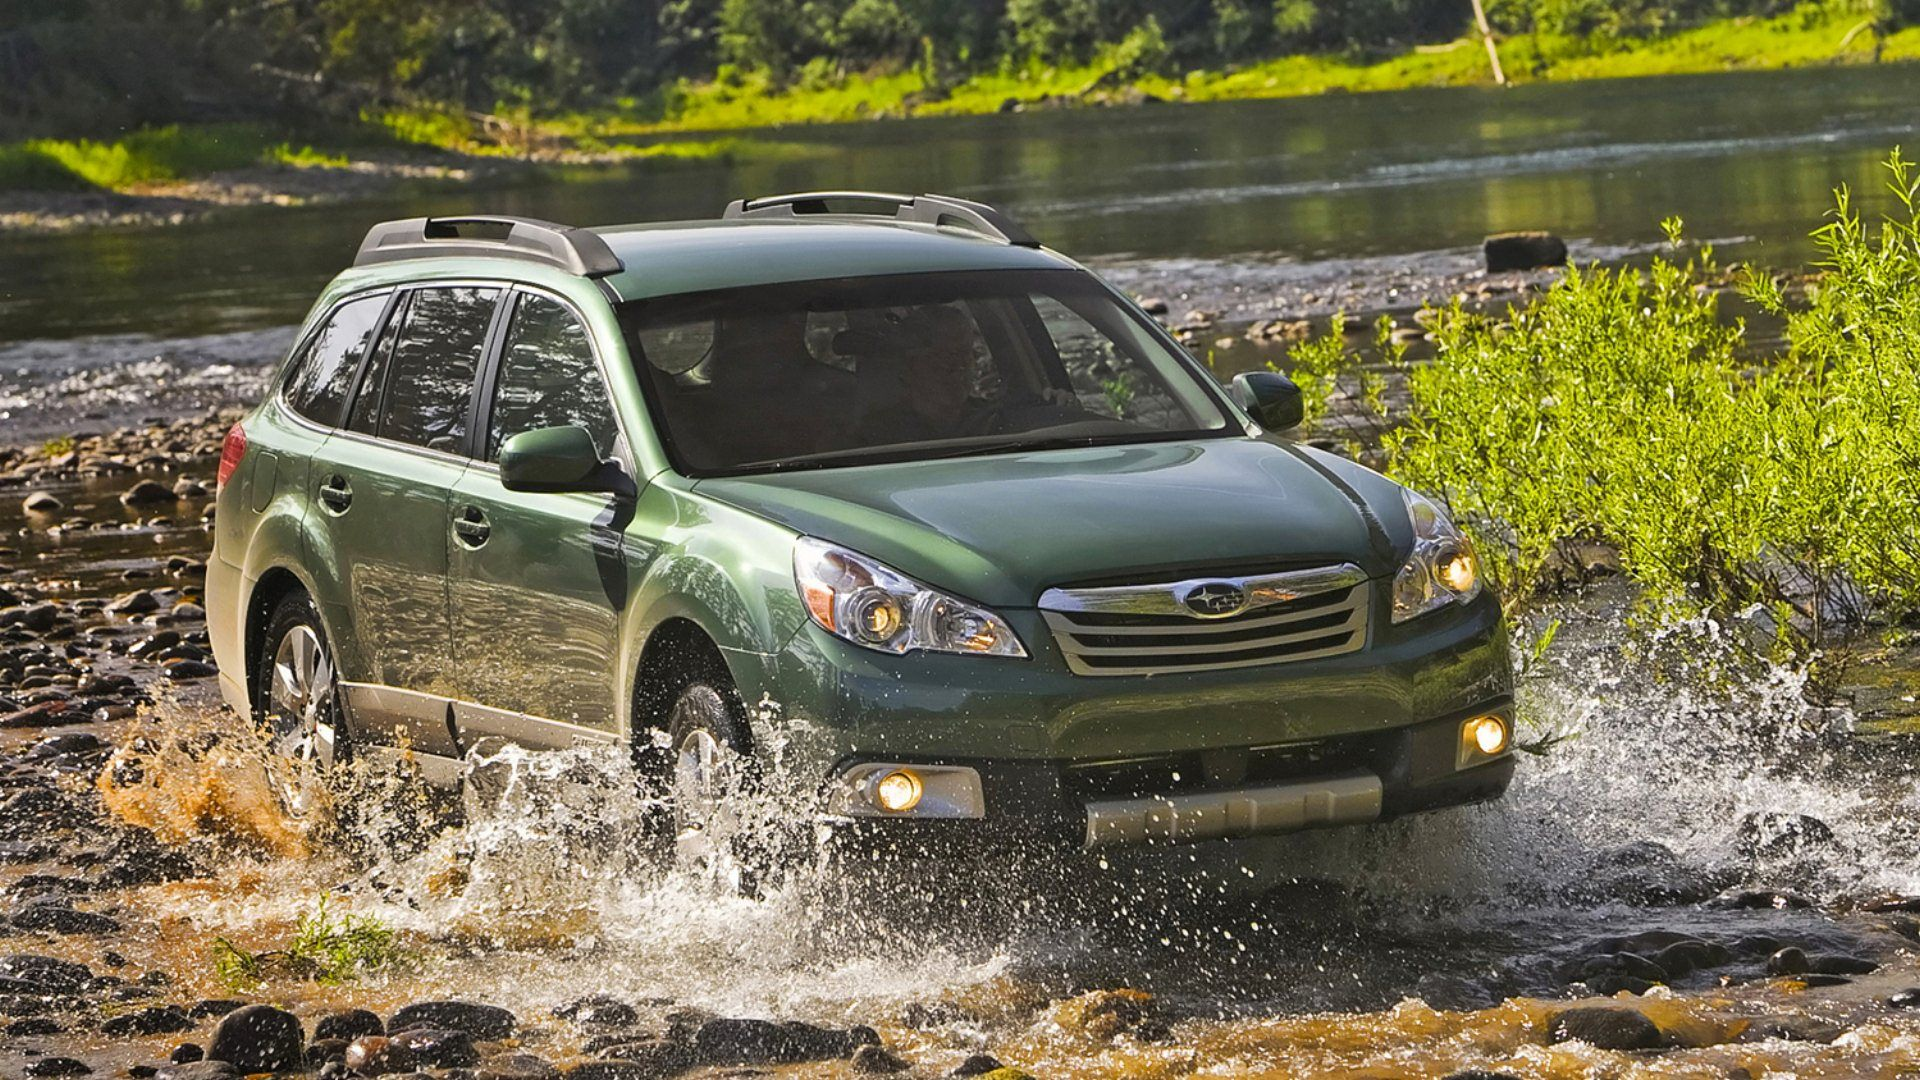 2012 subaru outback was voted most practical and affordable in its class